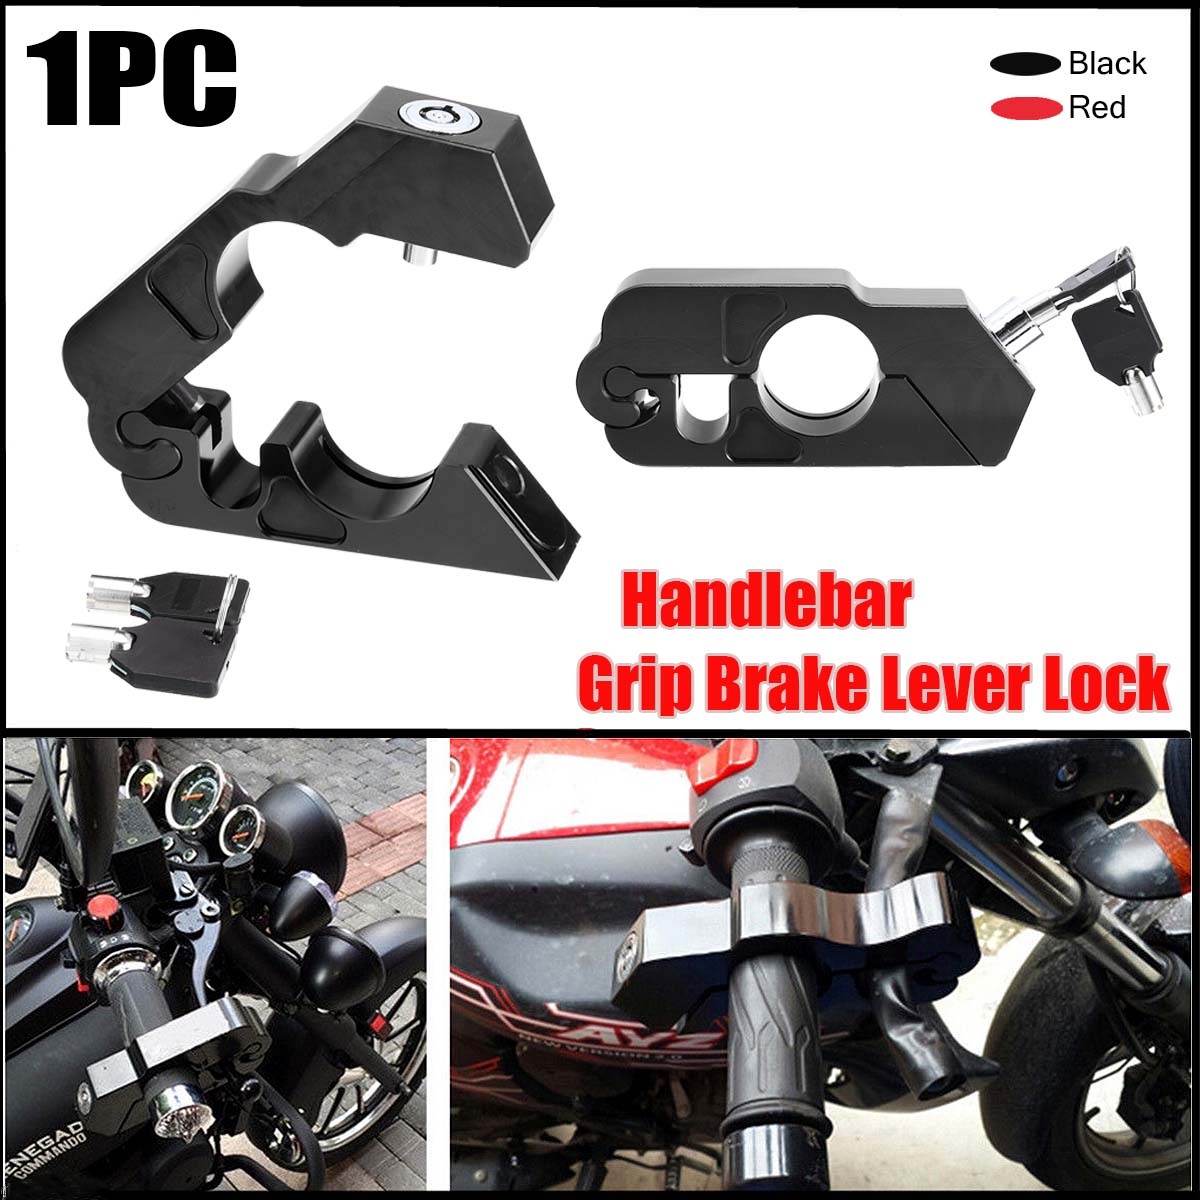 Motorcycle Handlebar Throttle Security Lock Motorcycle Brake Lever Accessories Anti Theft Protection Safety Lock